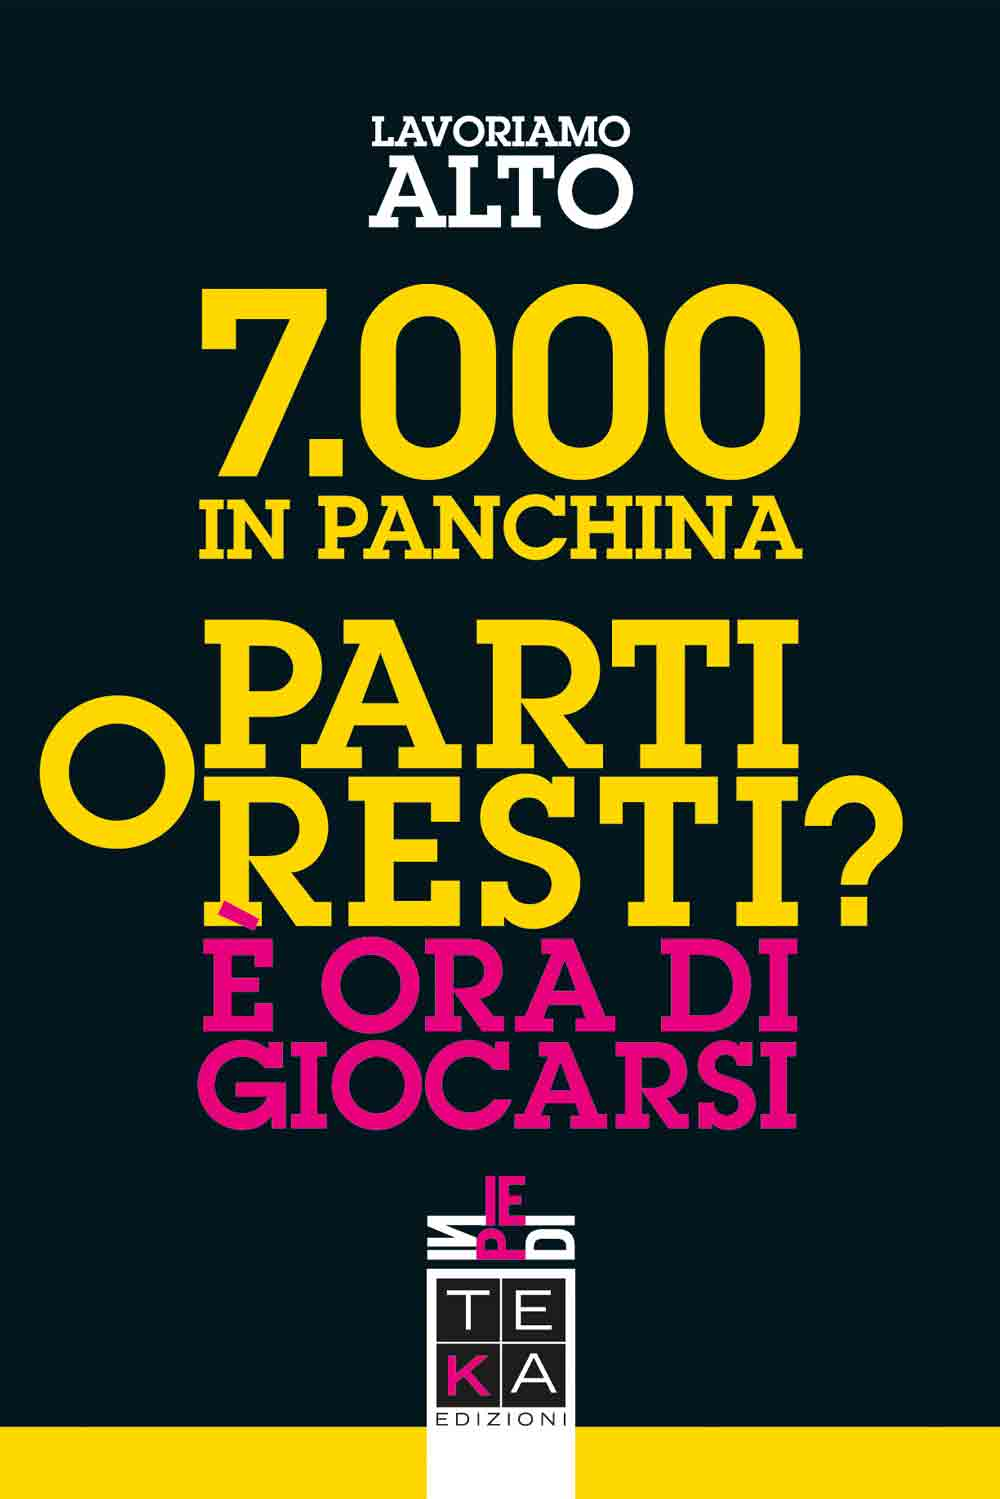 7000 in panchina